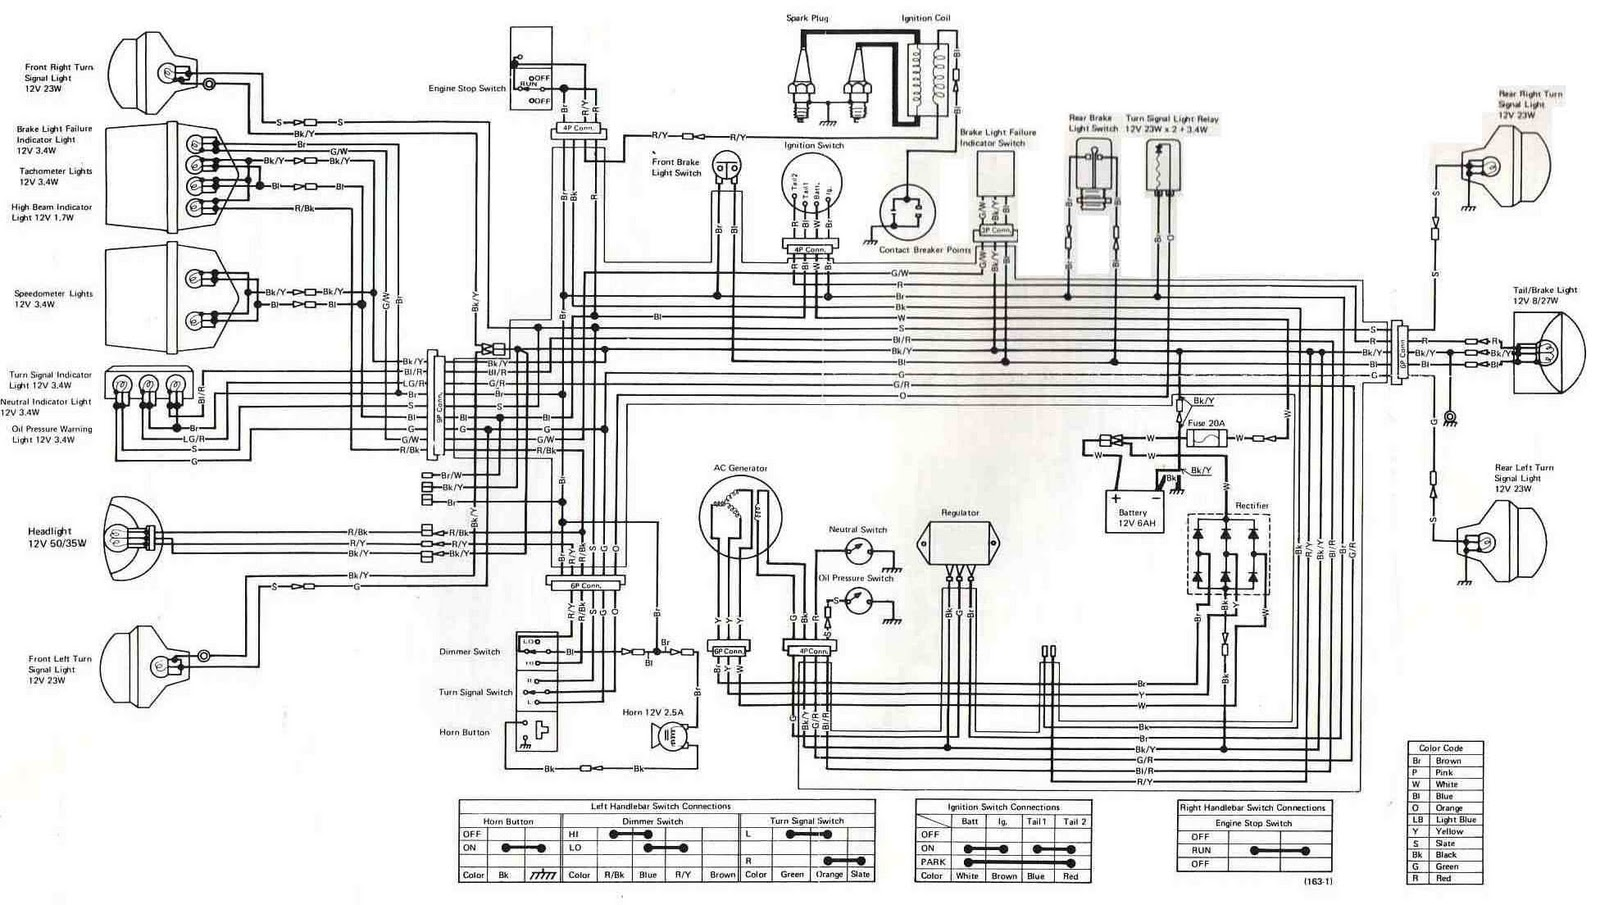 Kawasaki Kz400 1975 Electrical Wiring on kawasaki bayou 220 parts diagram